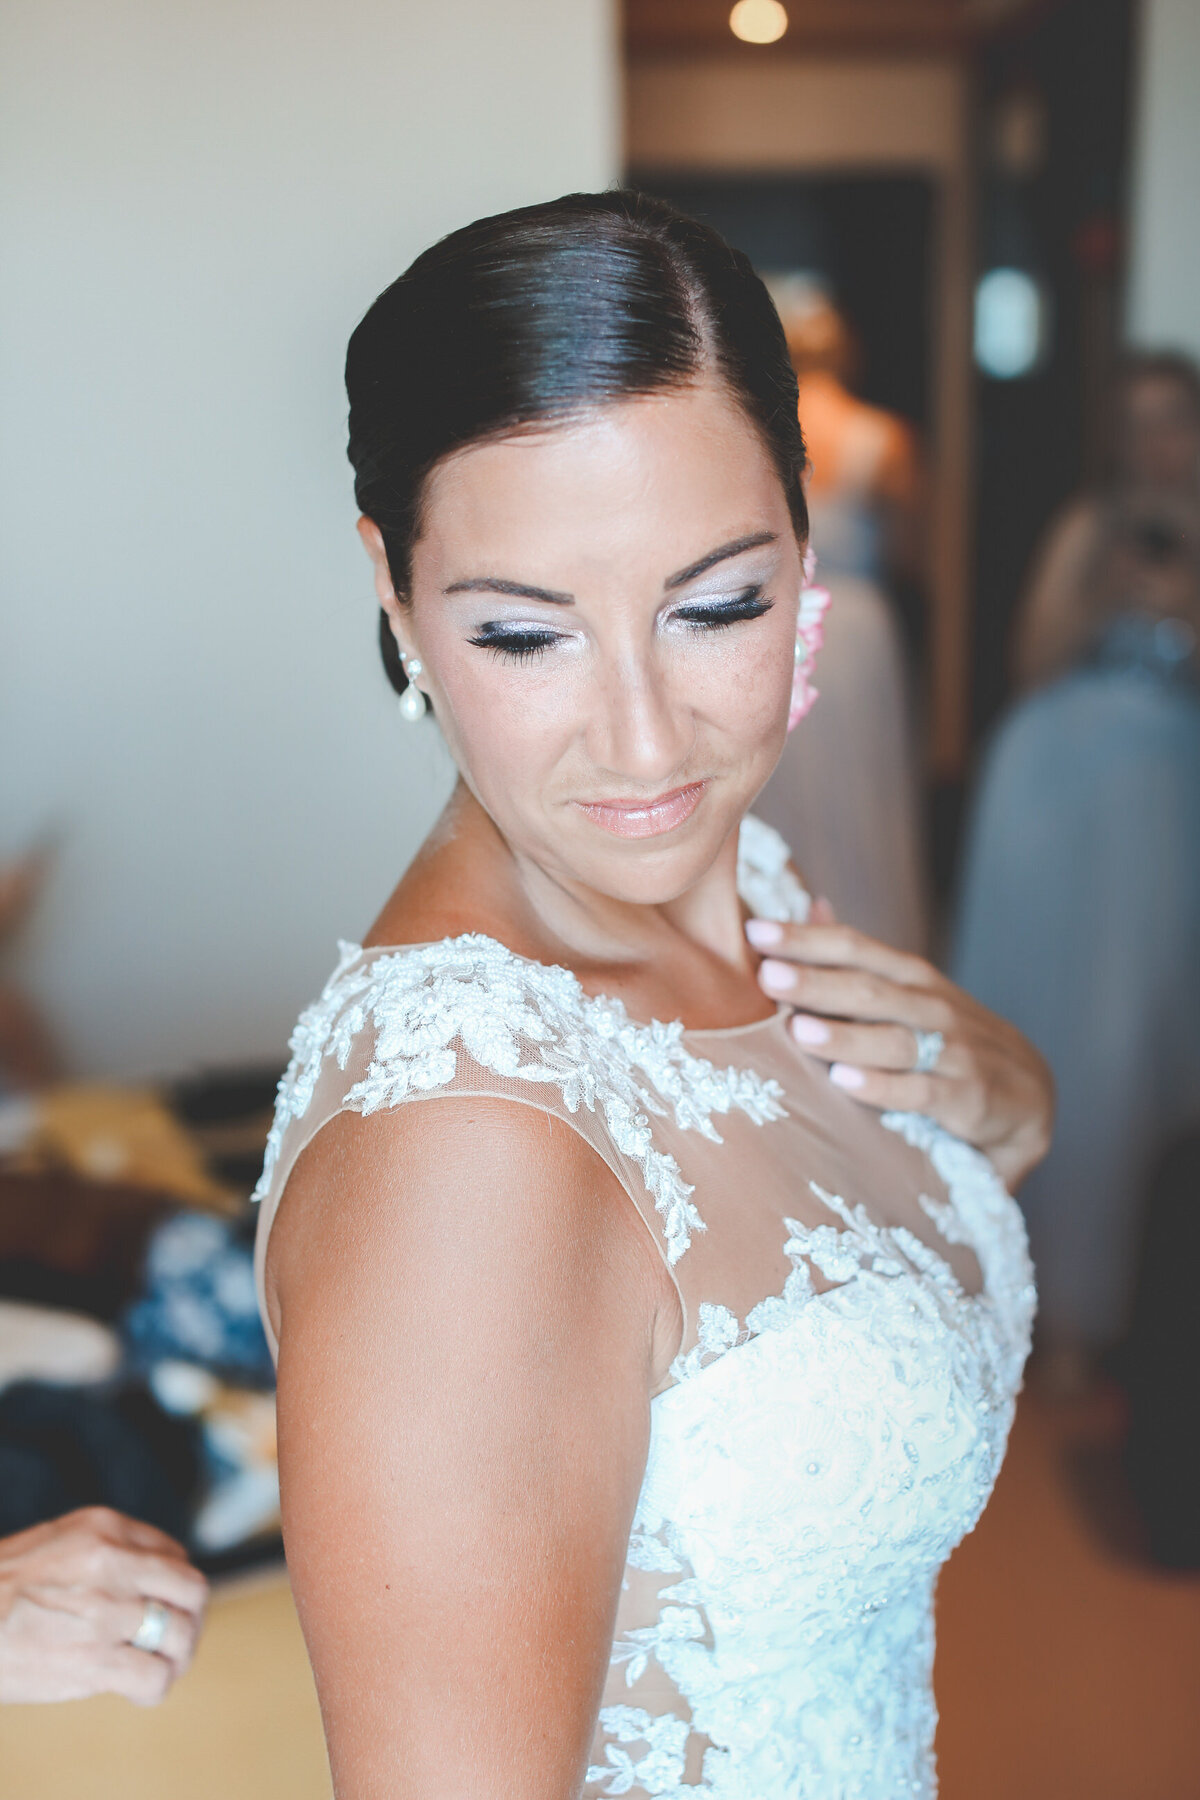 DESTINATION-WEDDING-SPAIN-HANNAH-MACGREGOR-PHOTOGRAPHY-0020